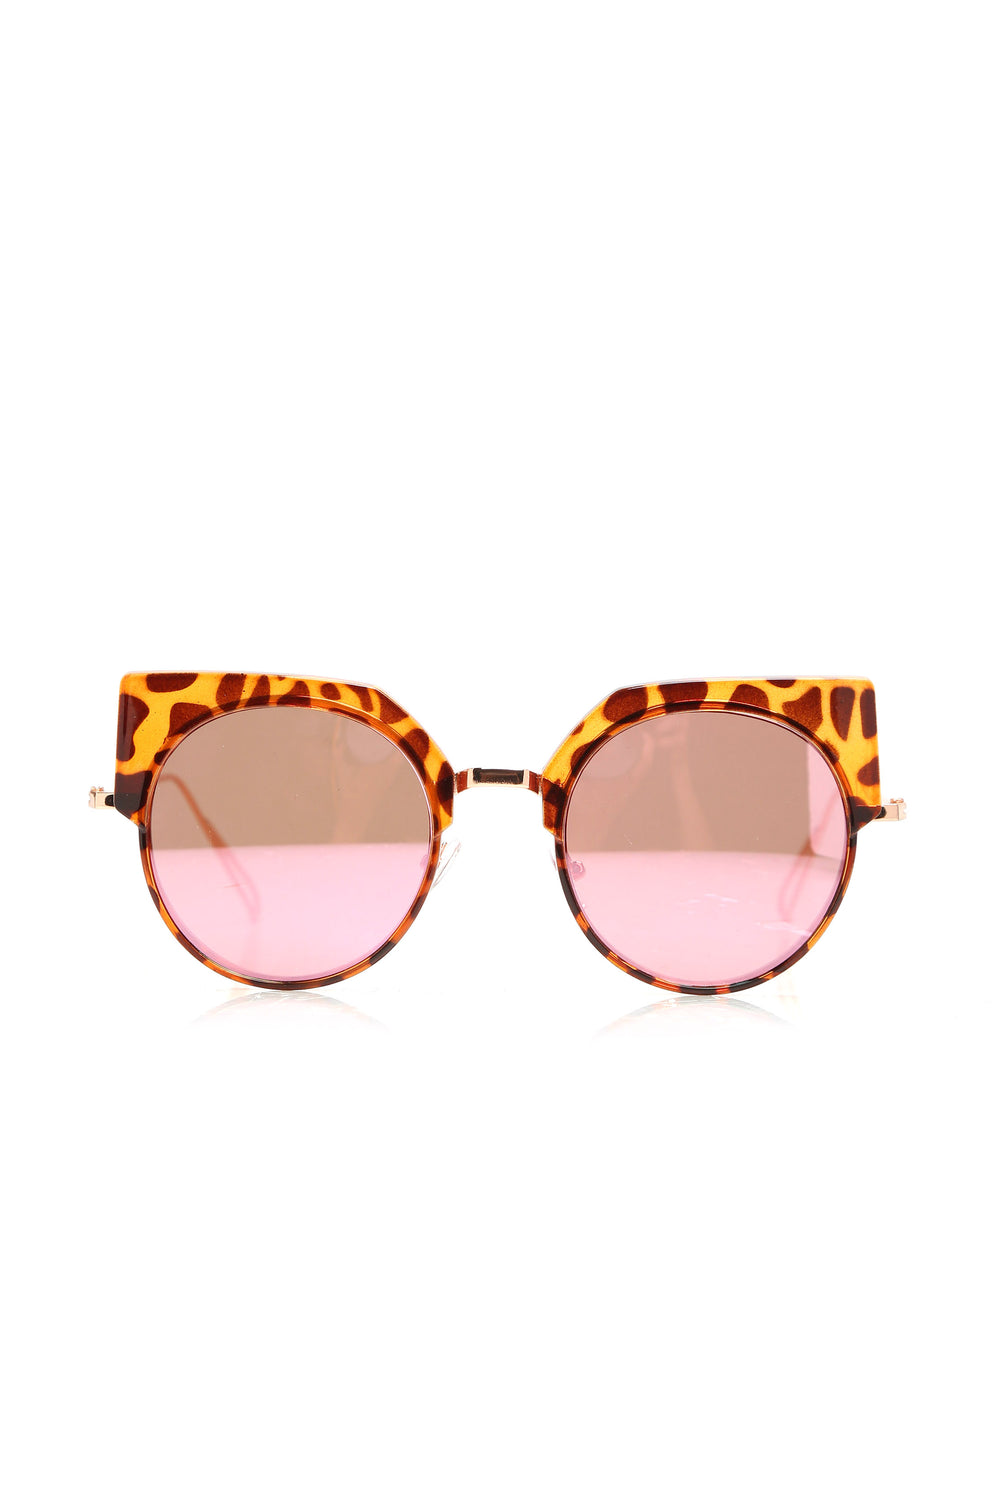 Say Nothing Sunglasses - Pink/Rosegold